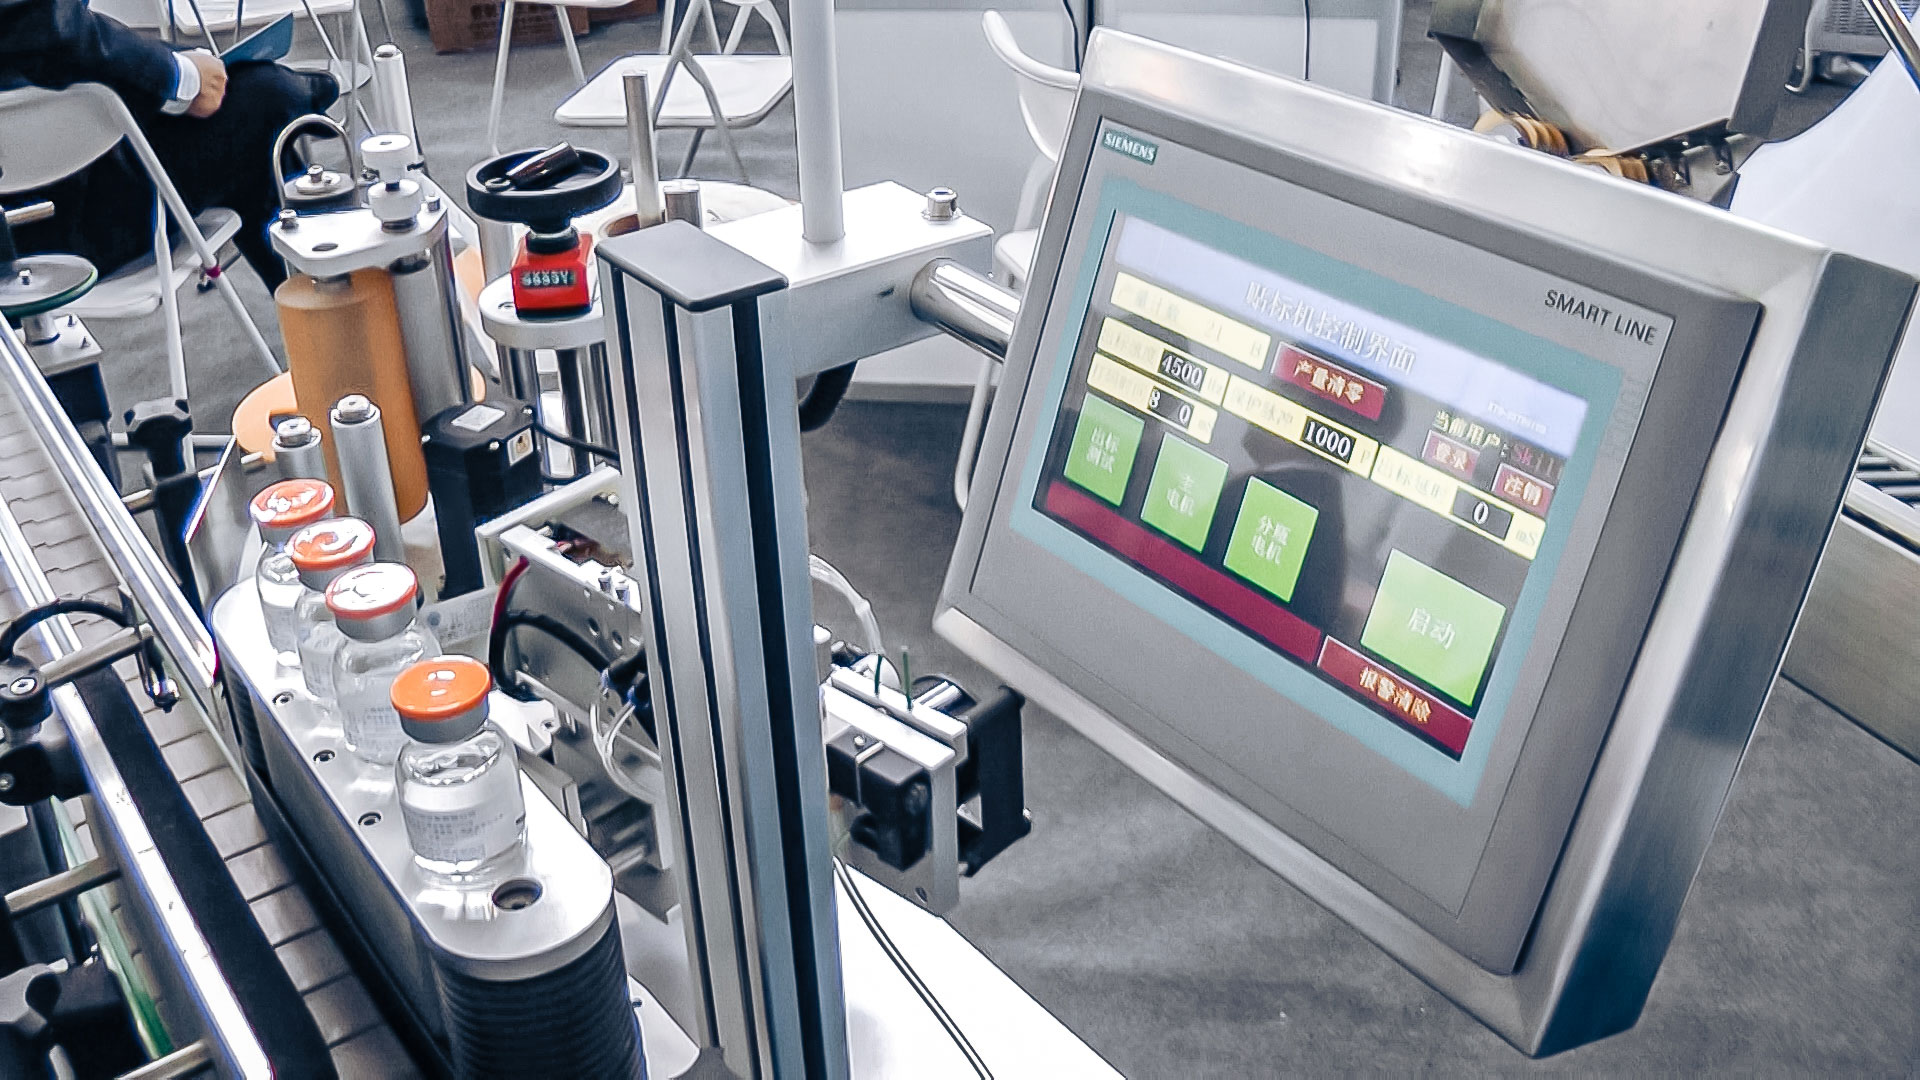 Automatic equipment for sticking self-adhesive labels on penicillin vials for pharmaceutical production